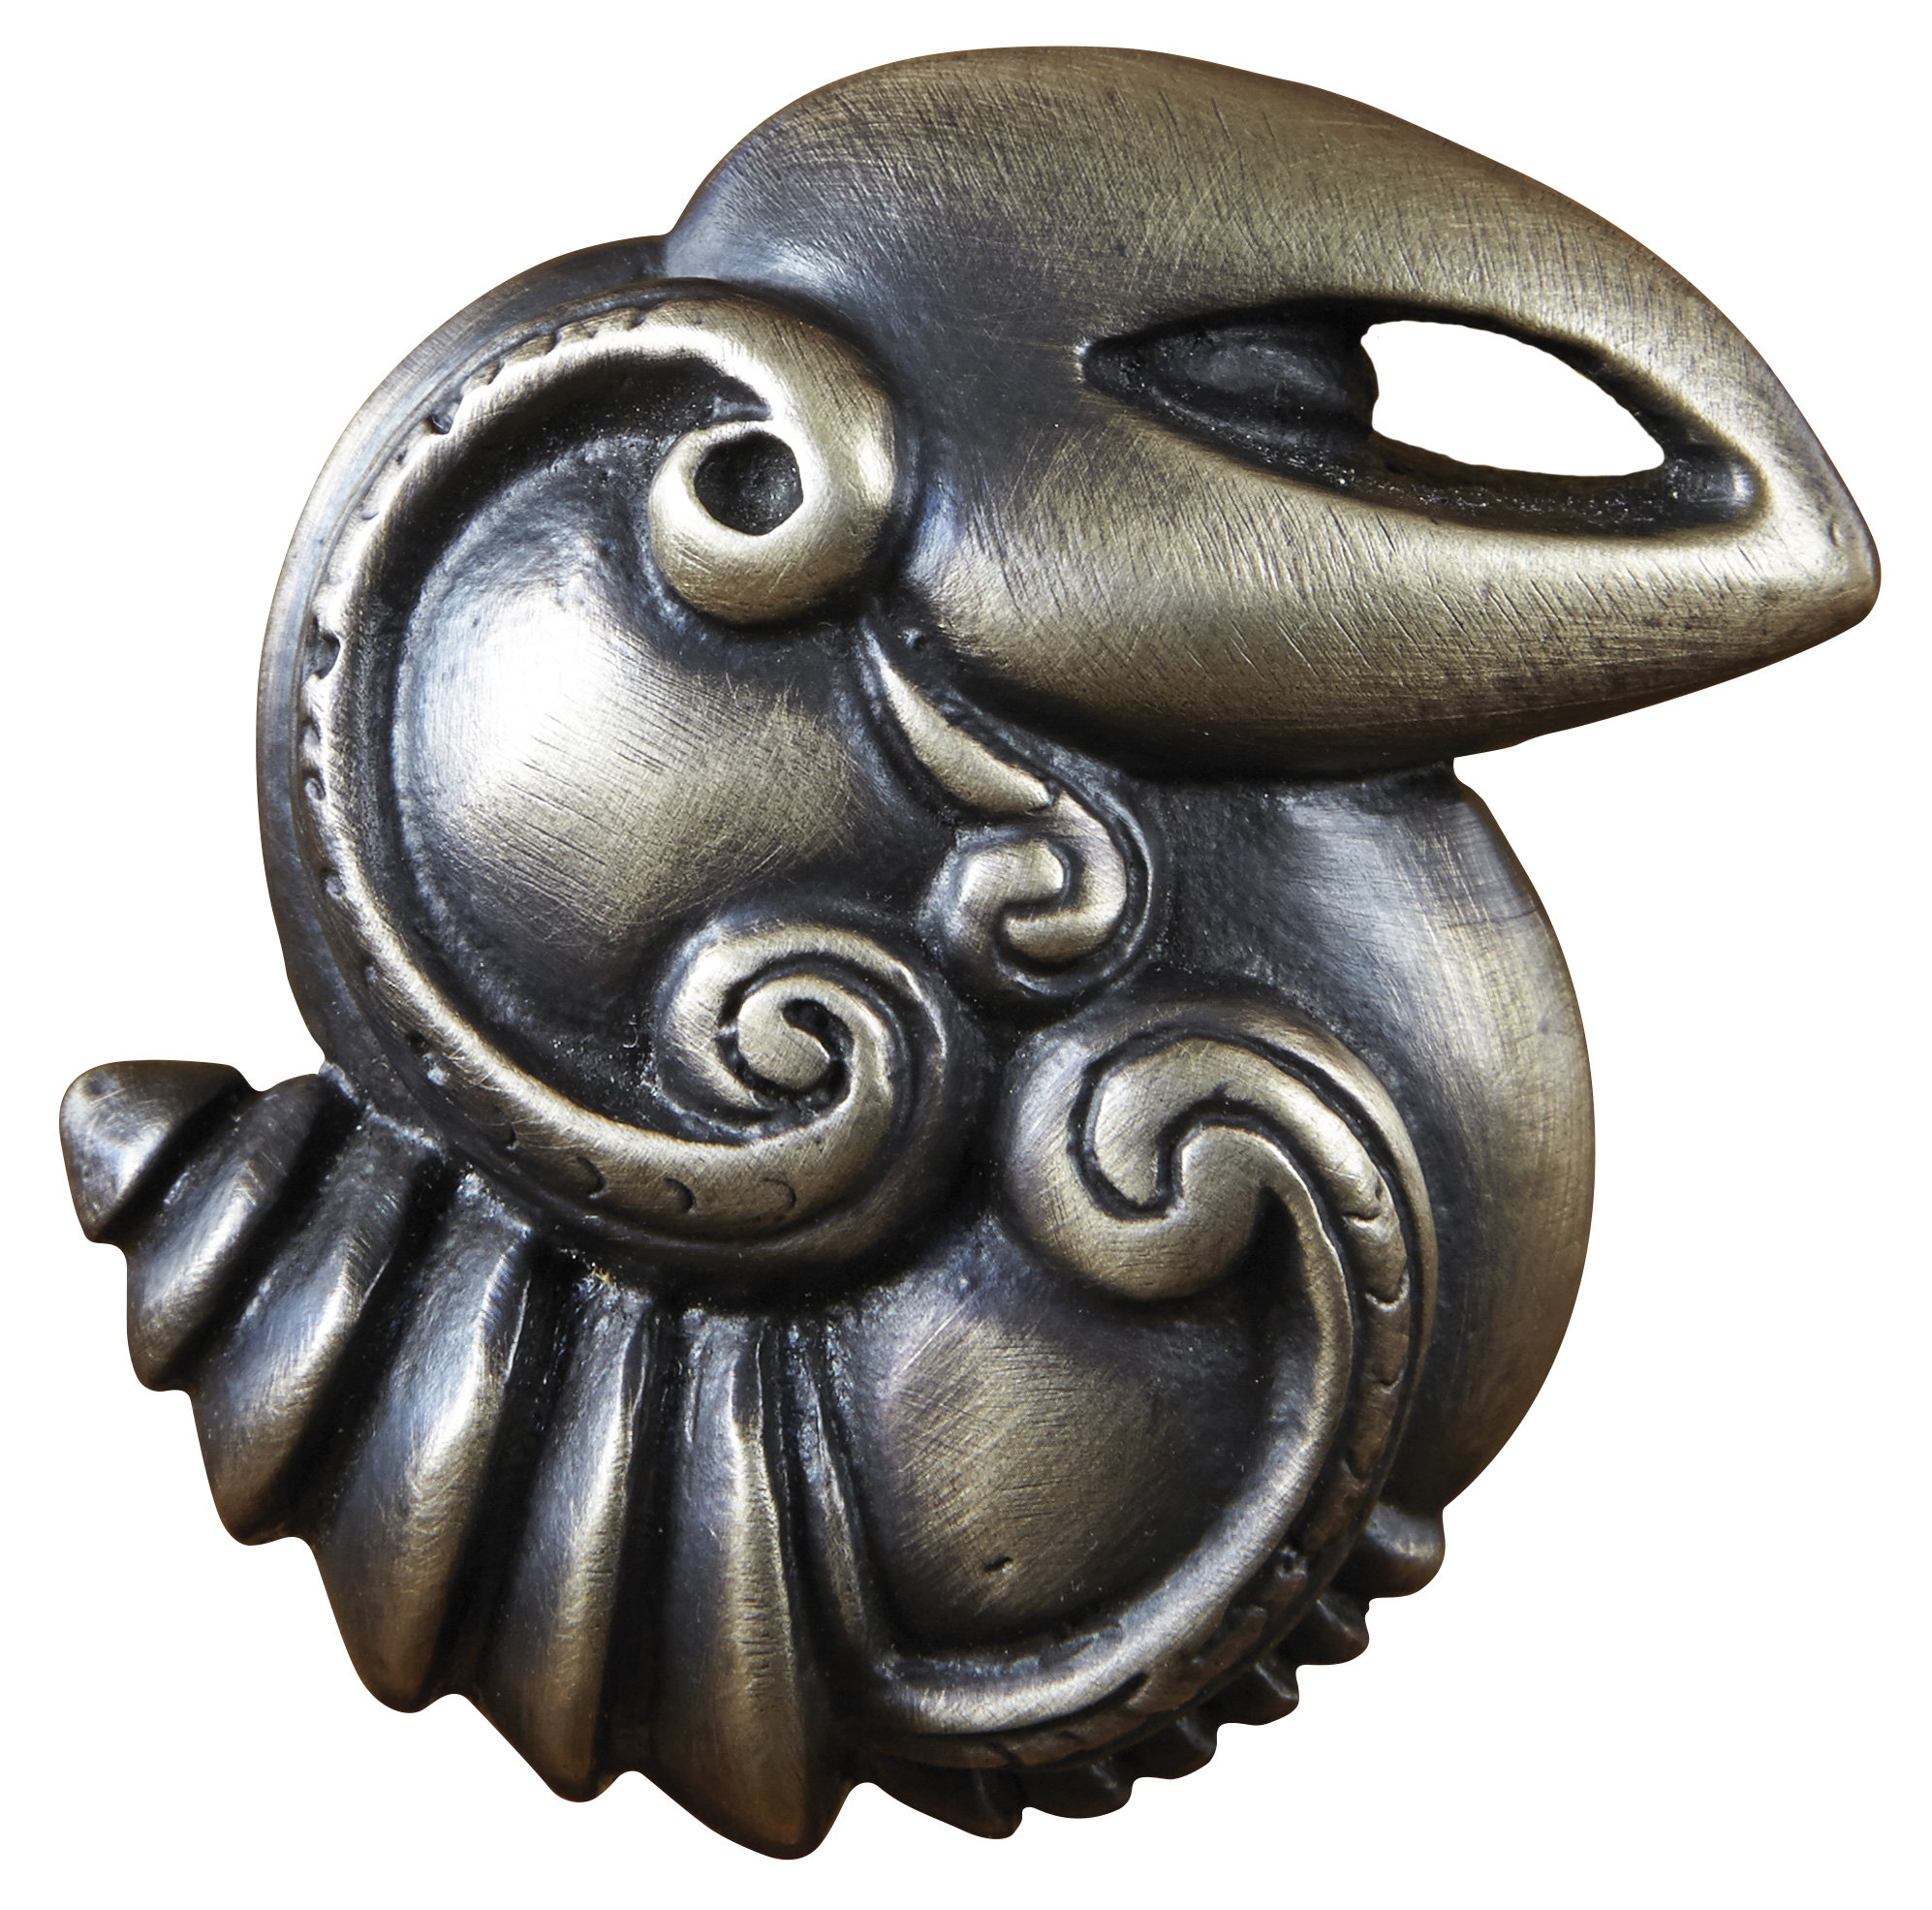 Hawaiian bird knob from the Hawaiian custom hardware collection